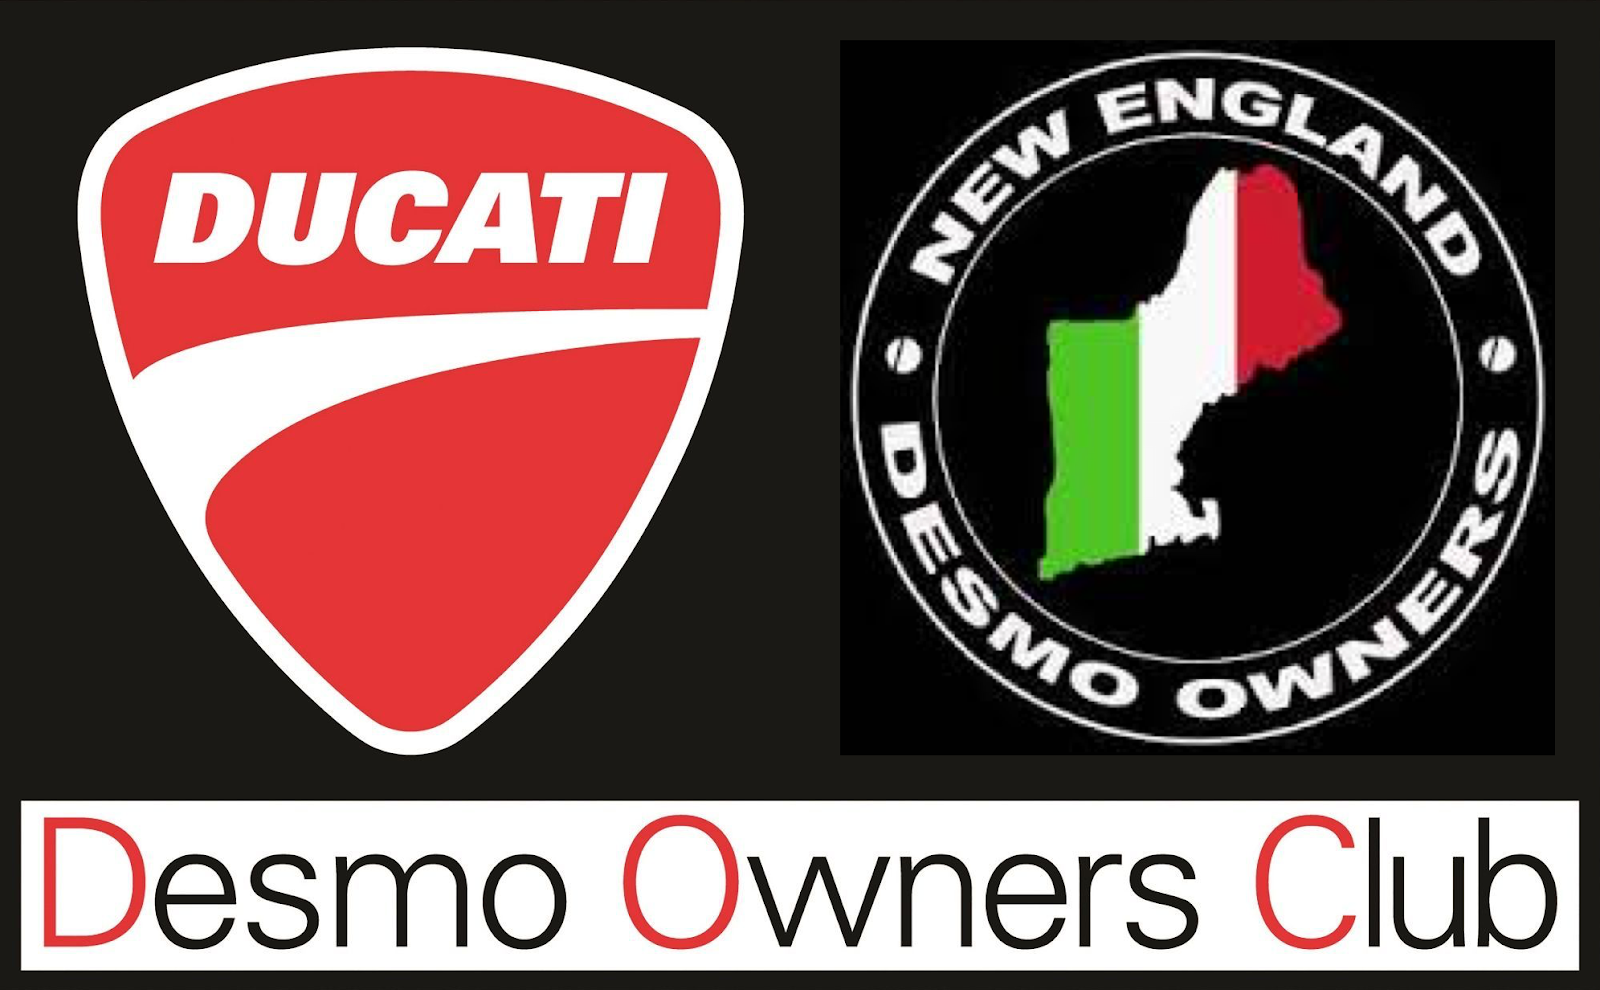 NEDOC New England Desmo Owners Club #WPMNEVERENDS